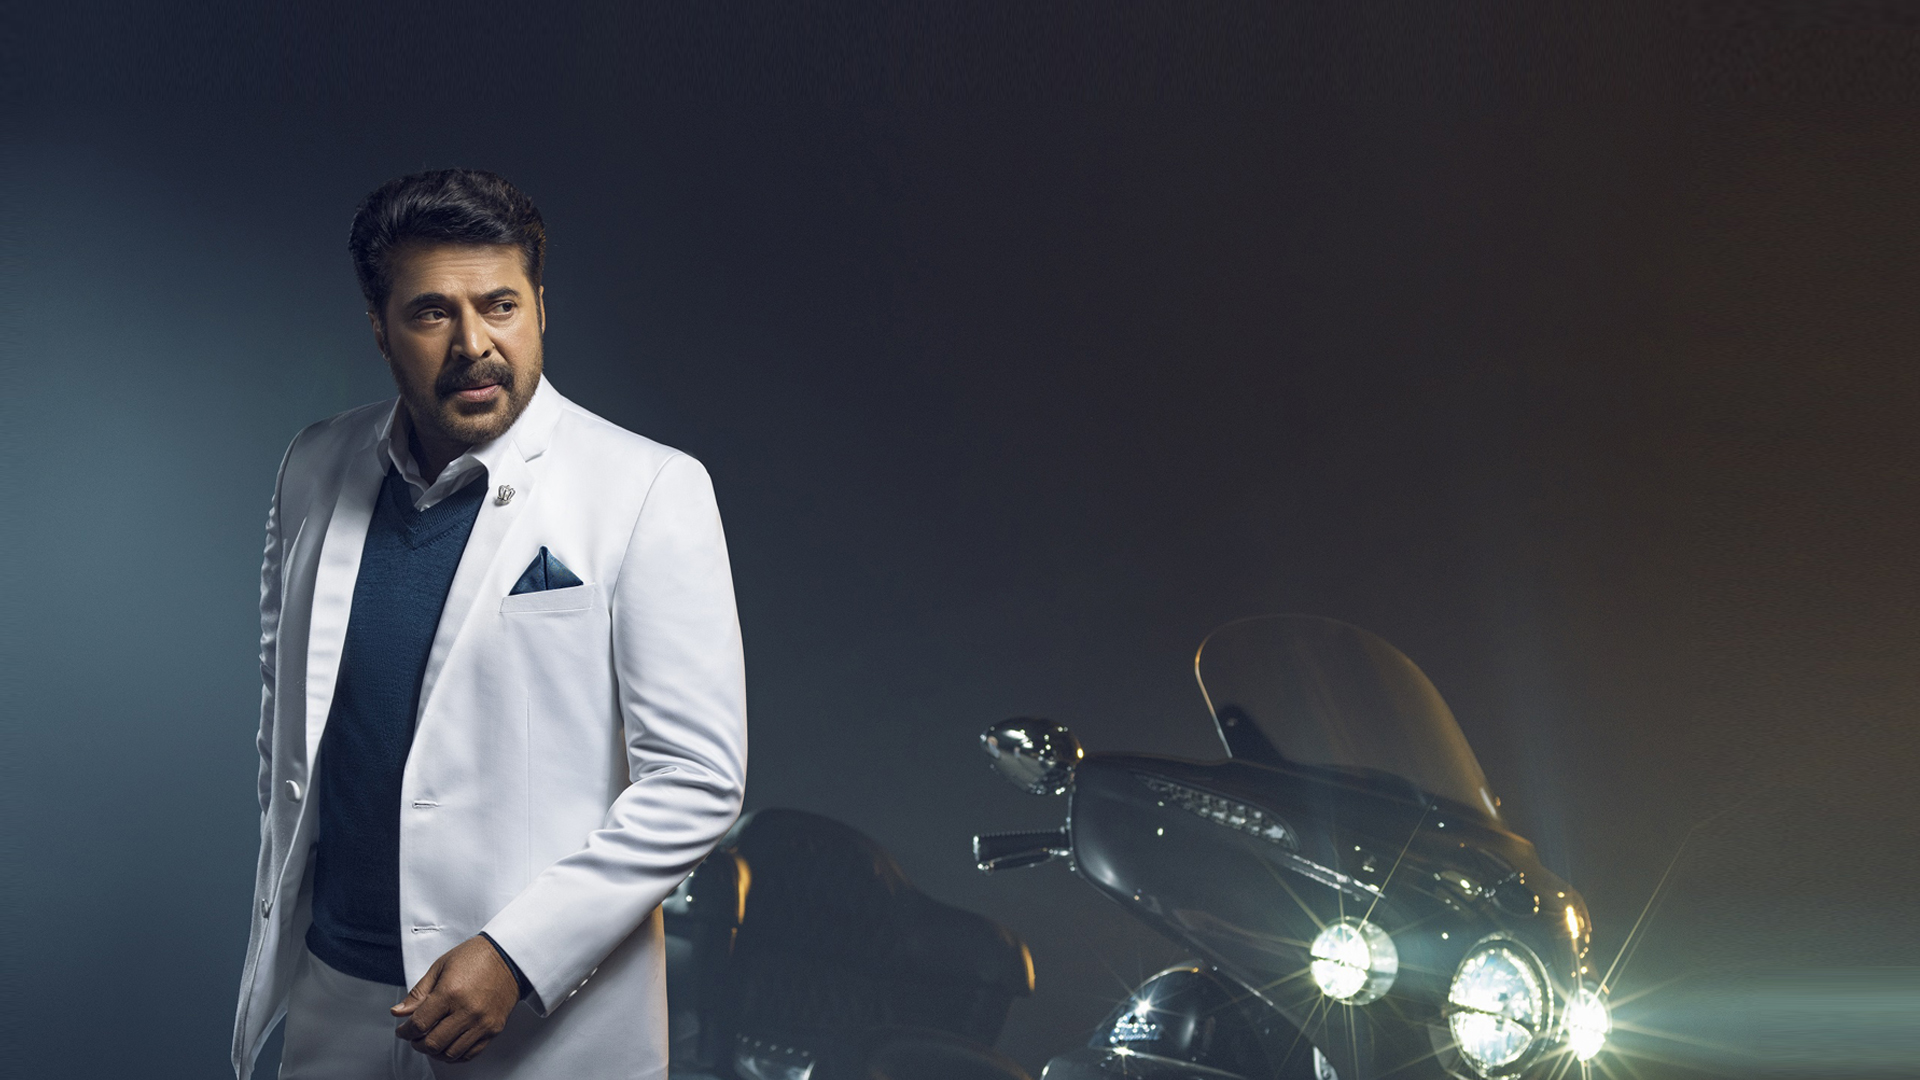 Megastar Mammootty To Wow Fans At Abu Dhabi T10 Opening Ceremony Concert